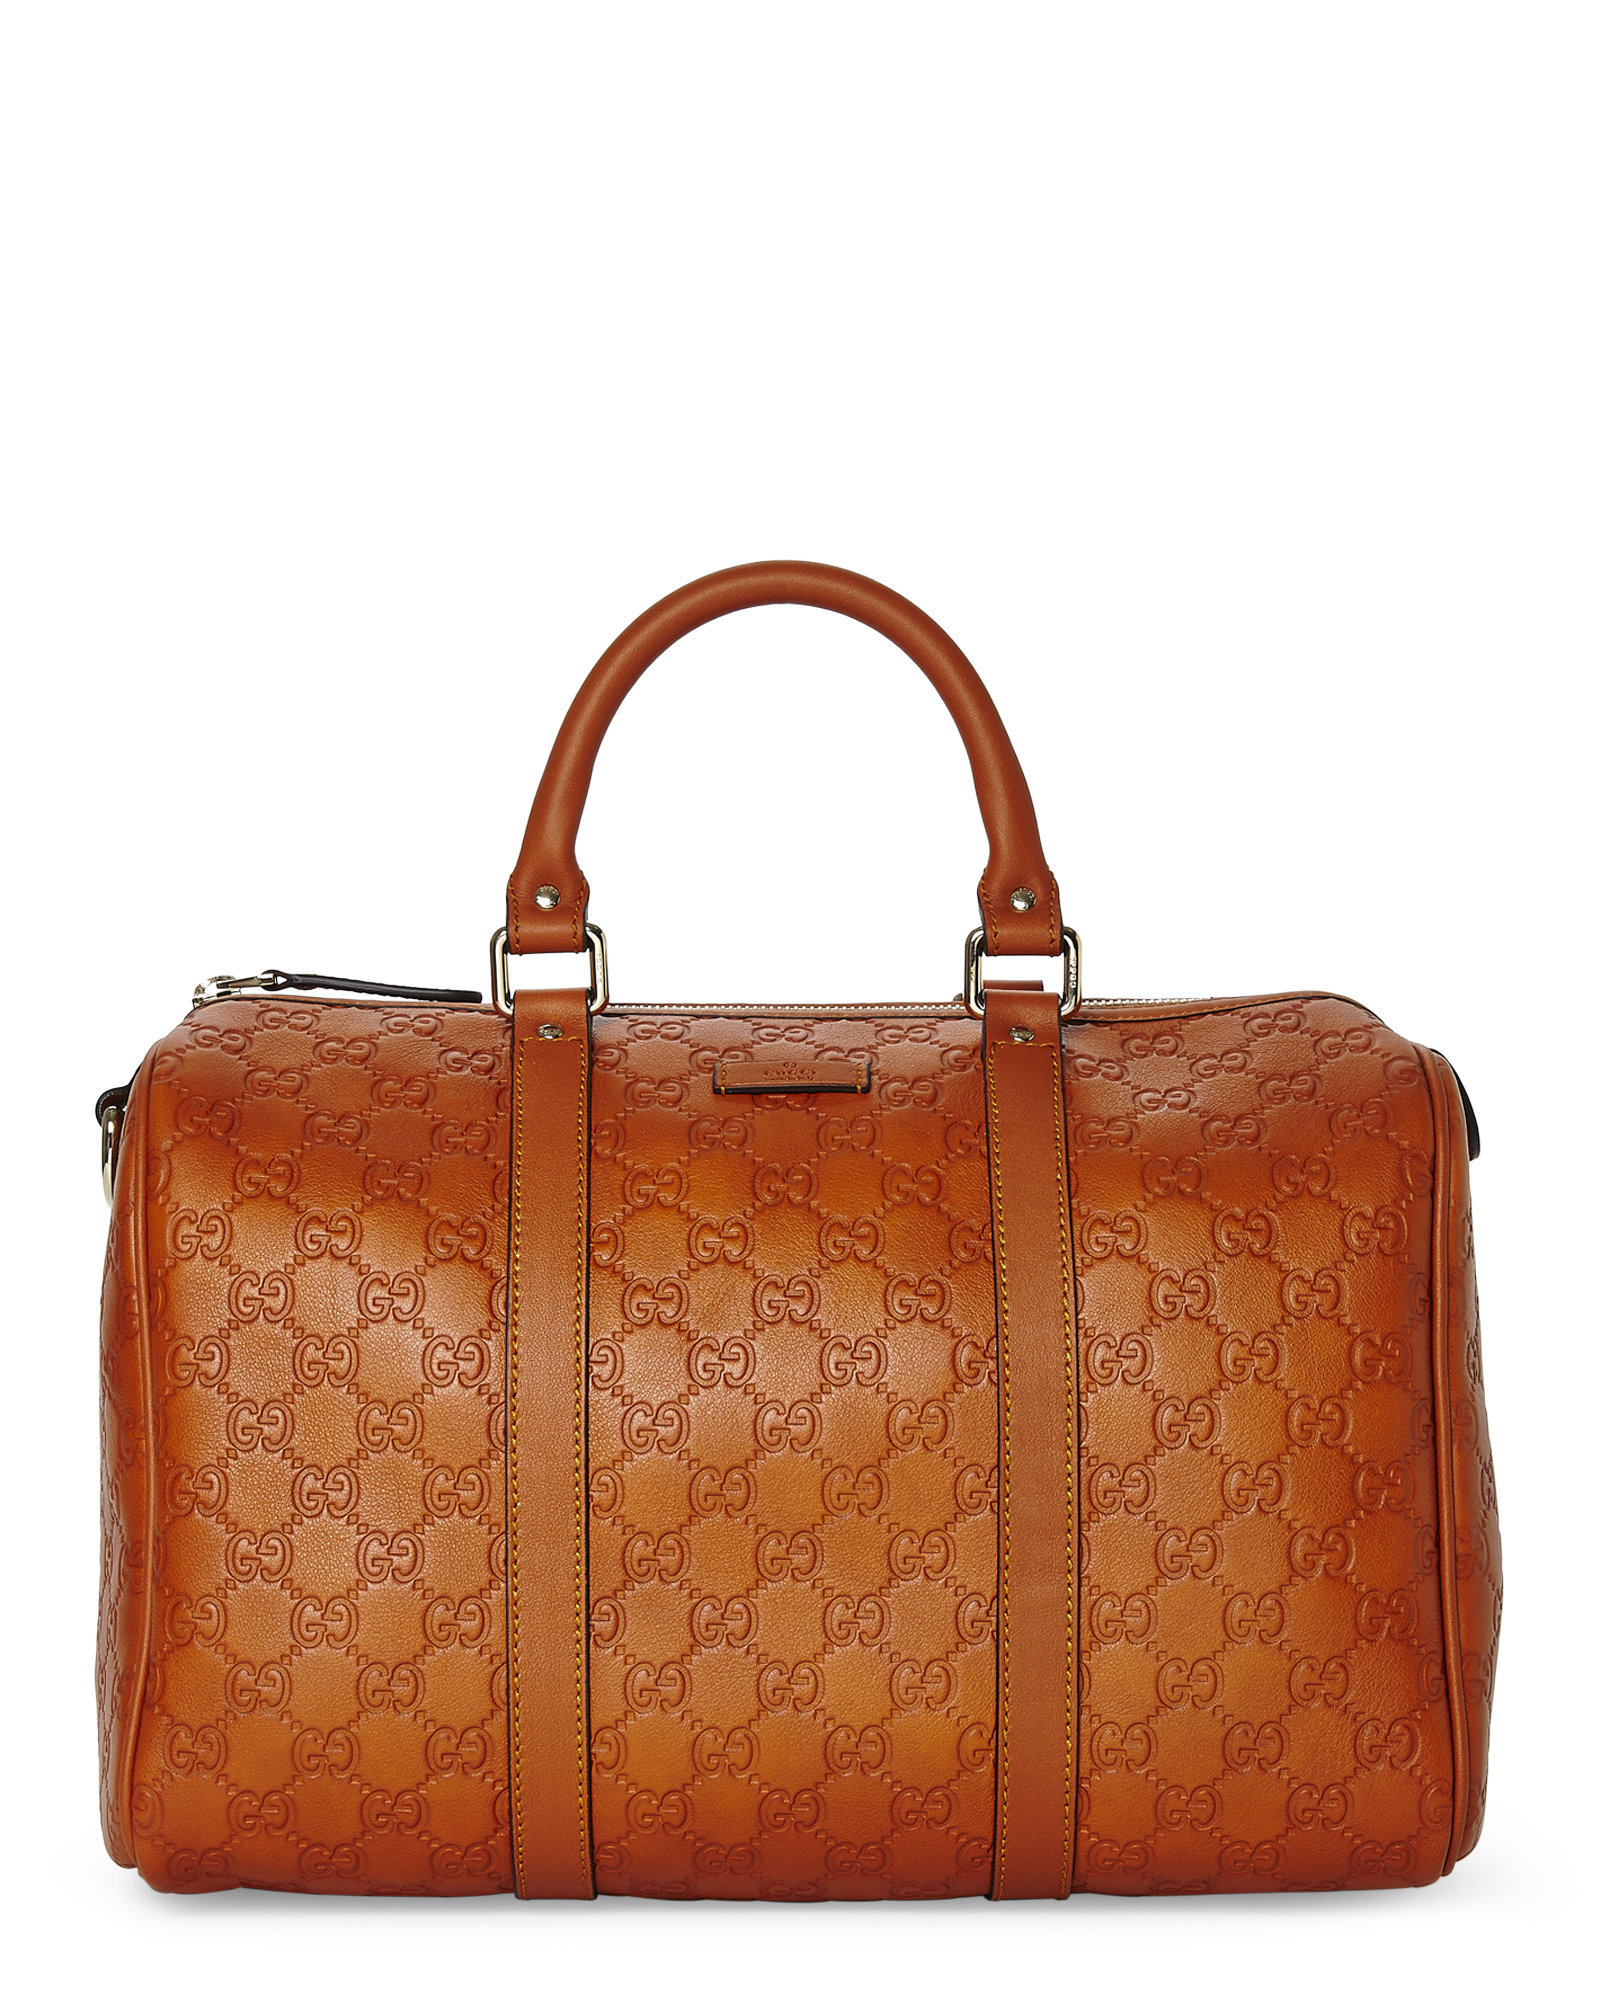 c3e15d5630aa Lyst - Gucci Orange Ssima Joy Boston Bag in Brown